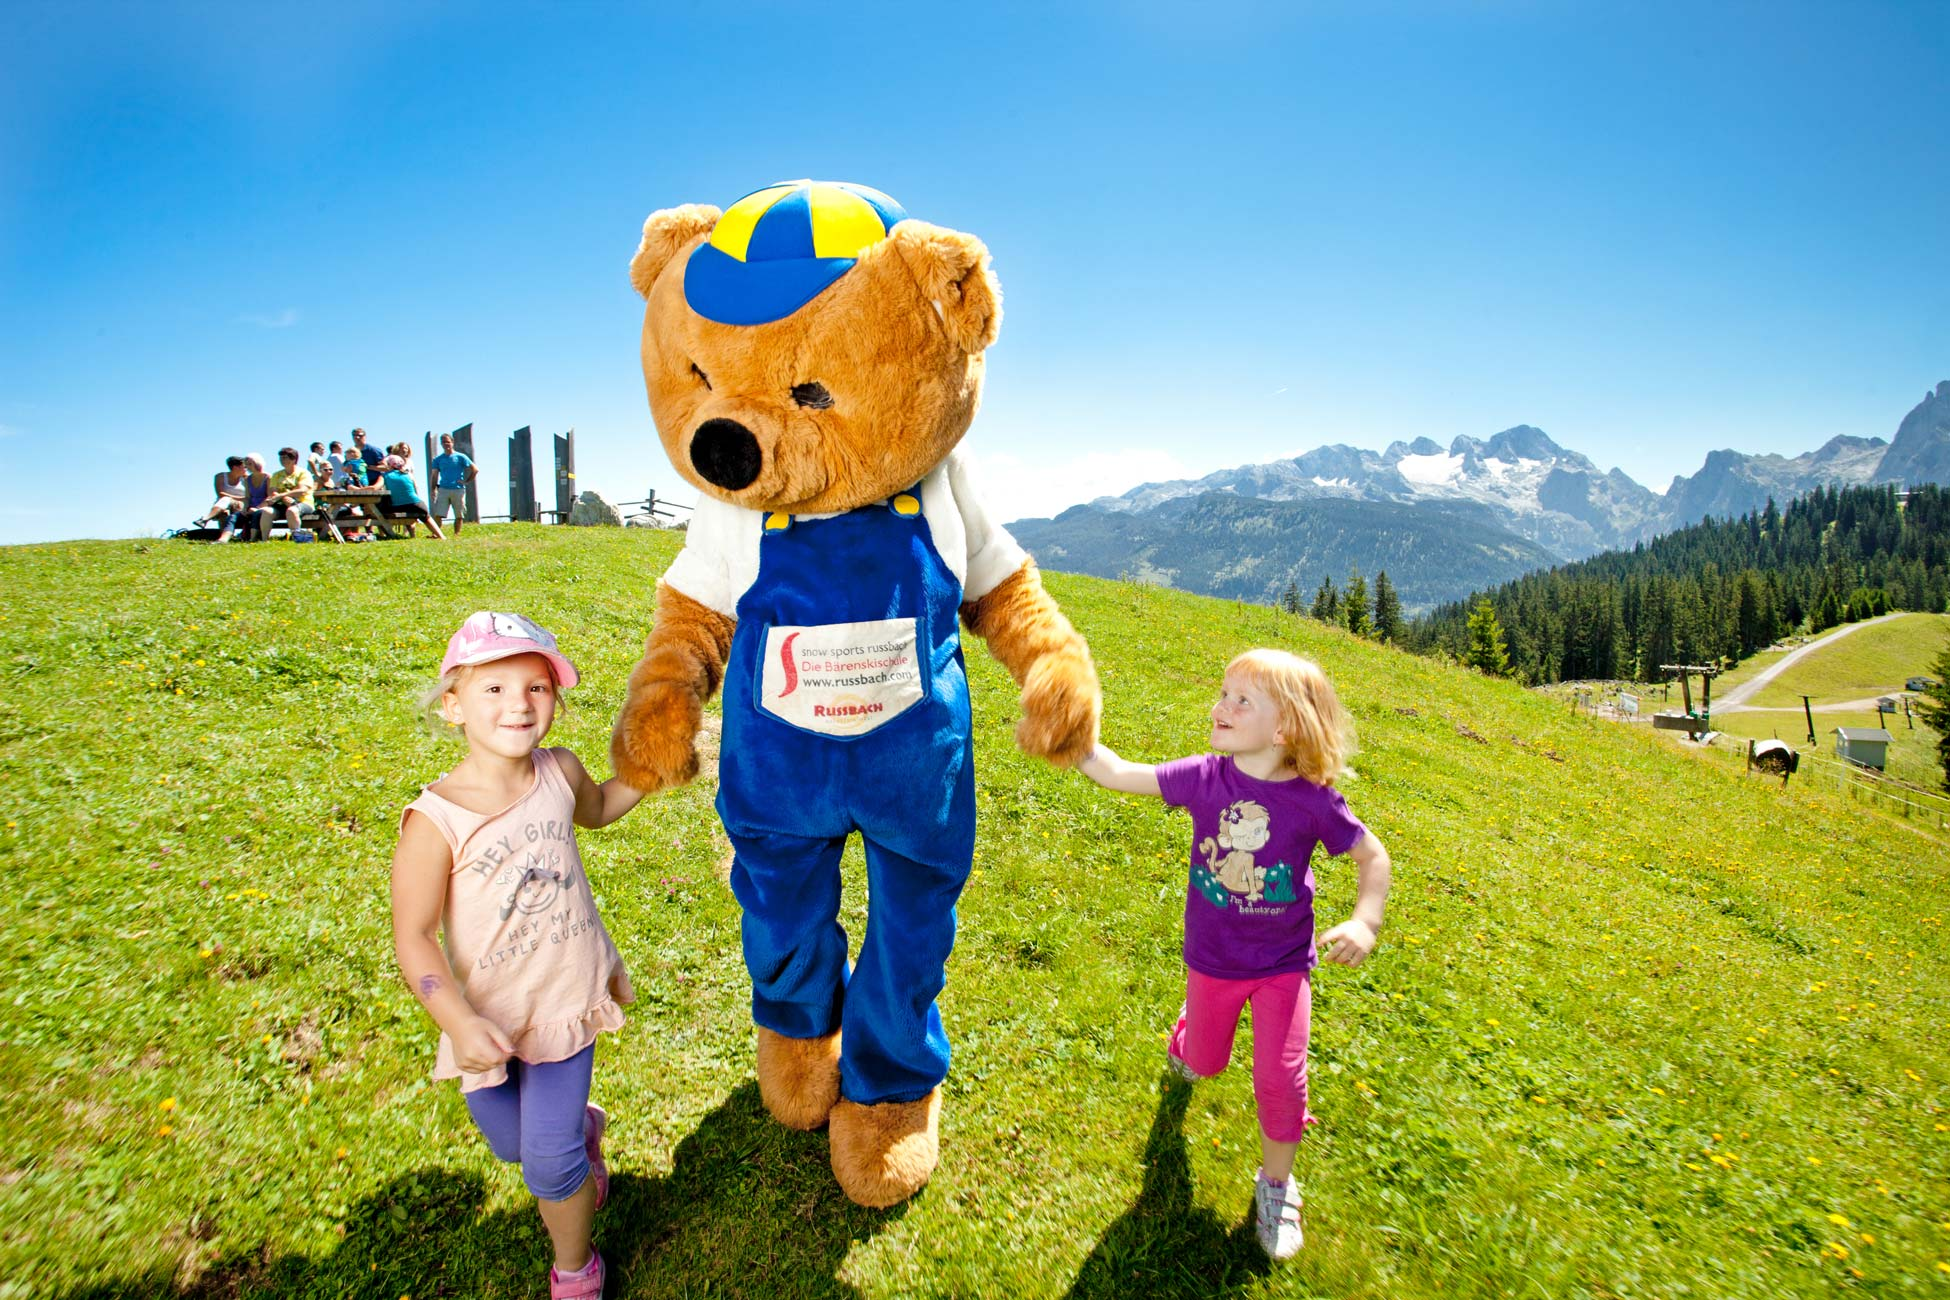 Bruno's world, Bruno bear, mountains, games, fun, children, family, Dachstein West, Dachstein, summer, hiking, nature, Salzburg, Austria